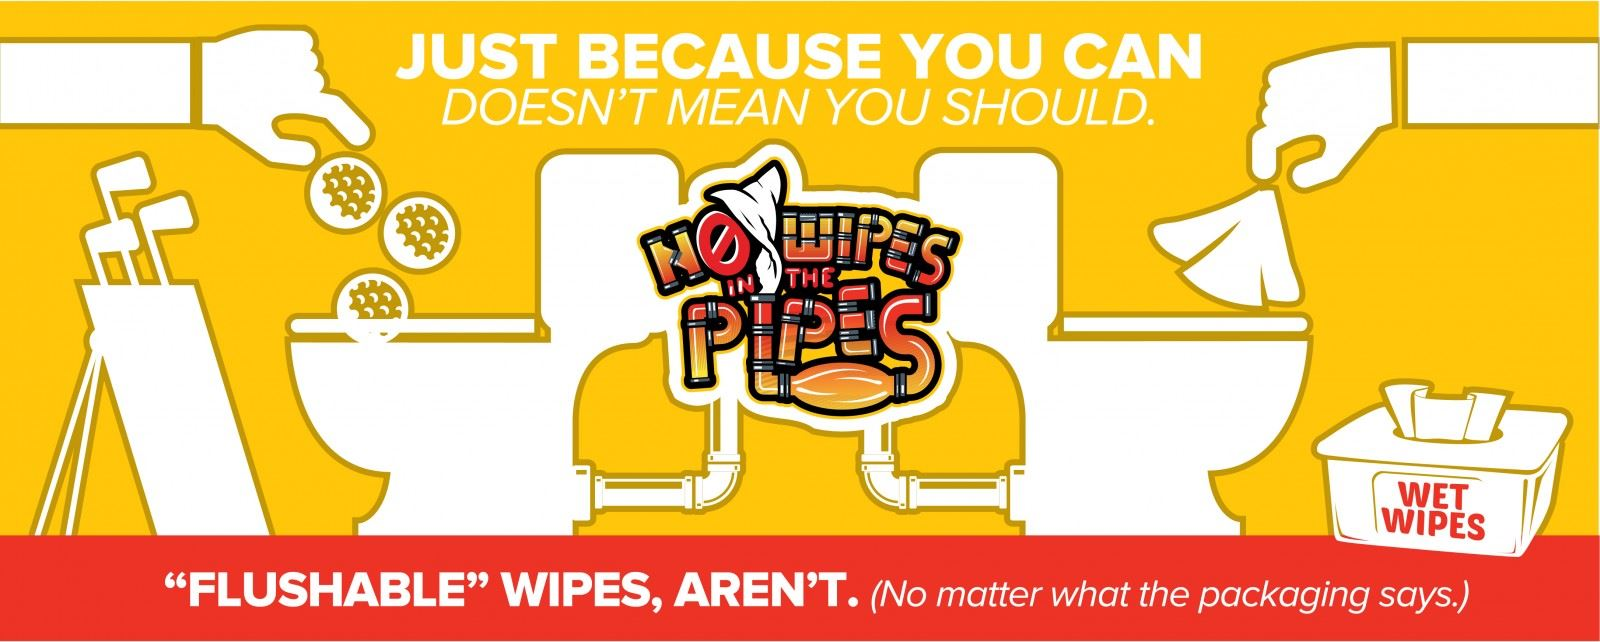 Wipes in Pipes are bad